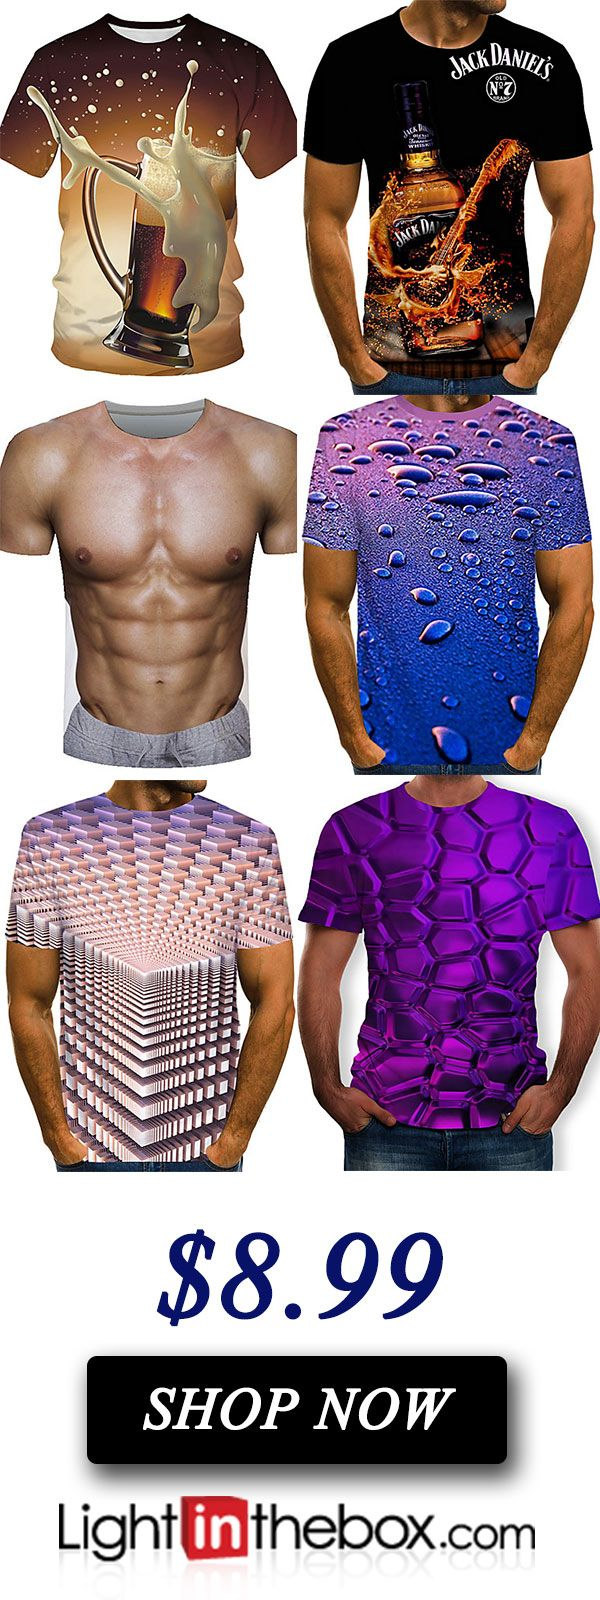 Men's Weekend Street chic Plus Size T-shirt - 3D #stylishmen